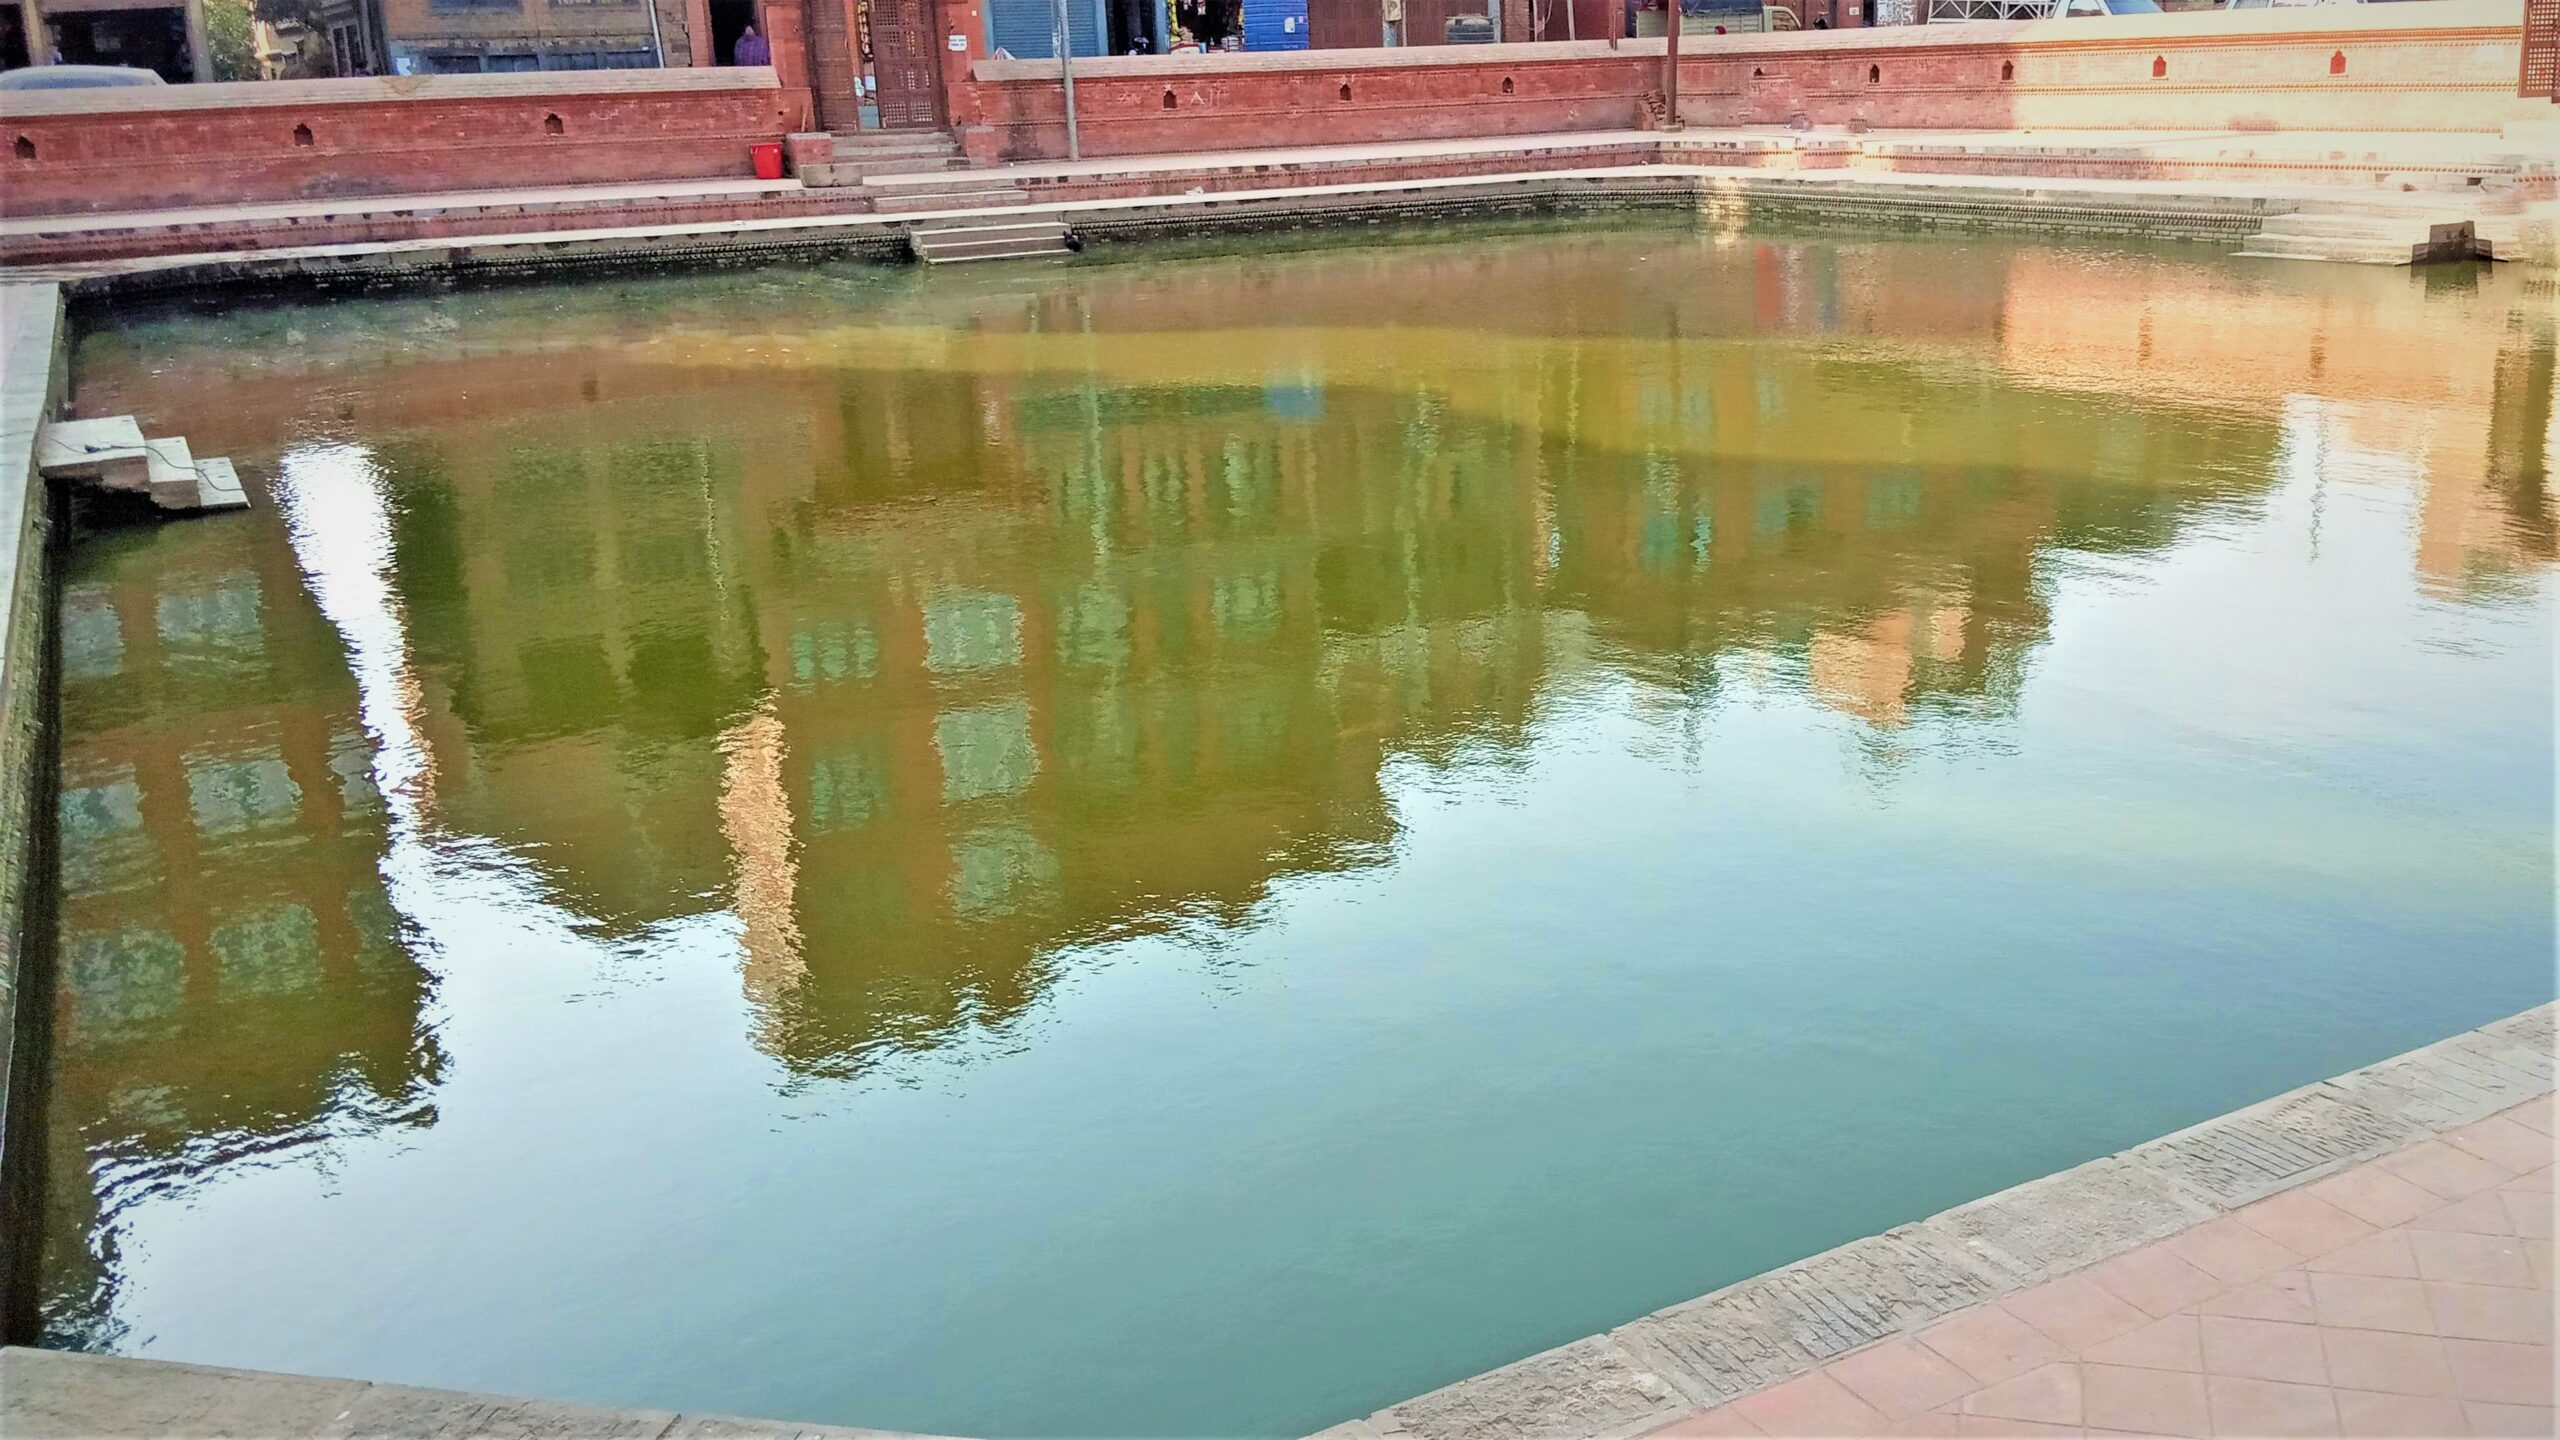 Nigoo pukhu(Dui pokhari);literally means the 2 ponds image